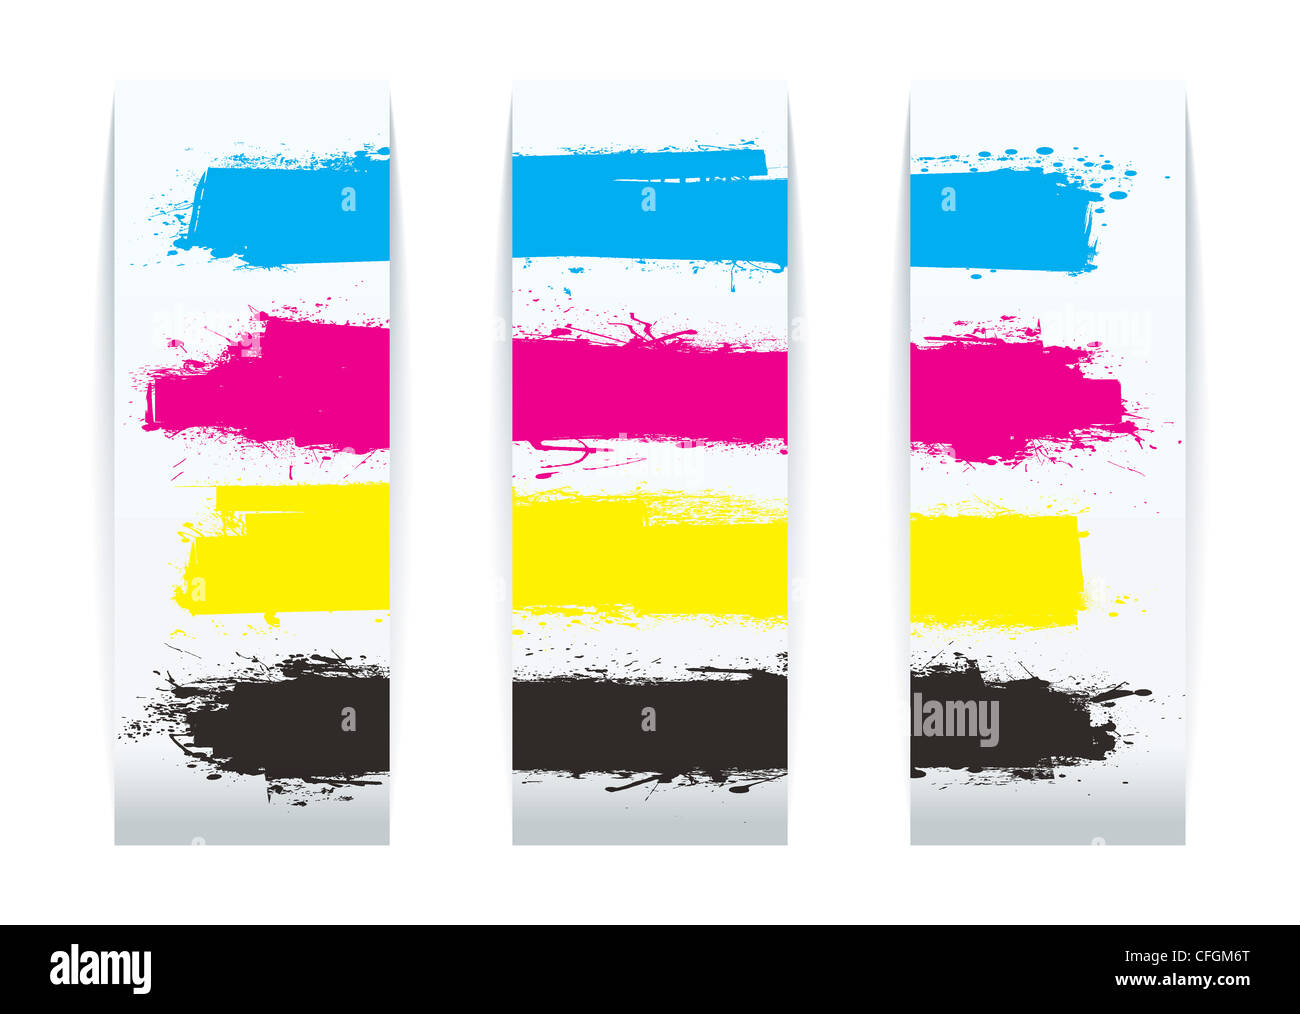 Design elements banner - Four Colour Paper Banner Cards Design Elements With Copy Space